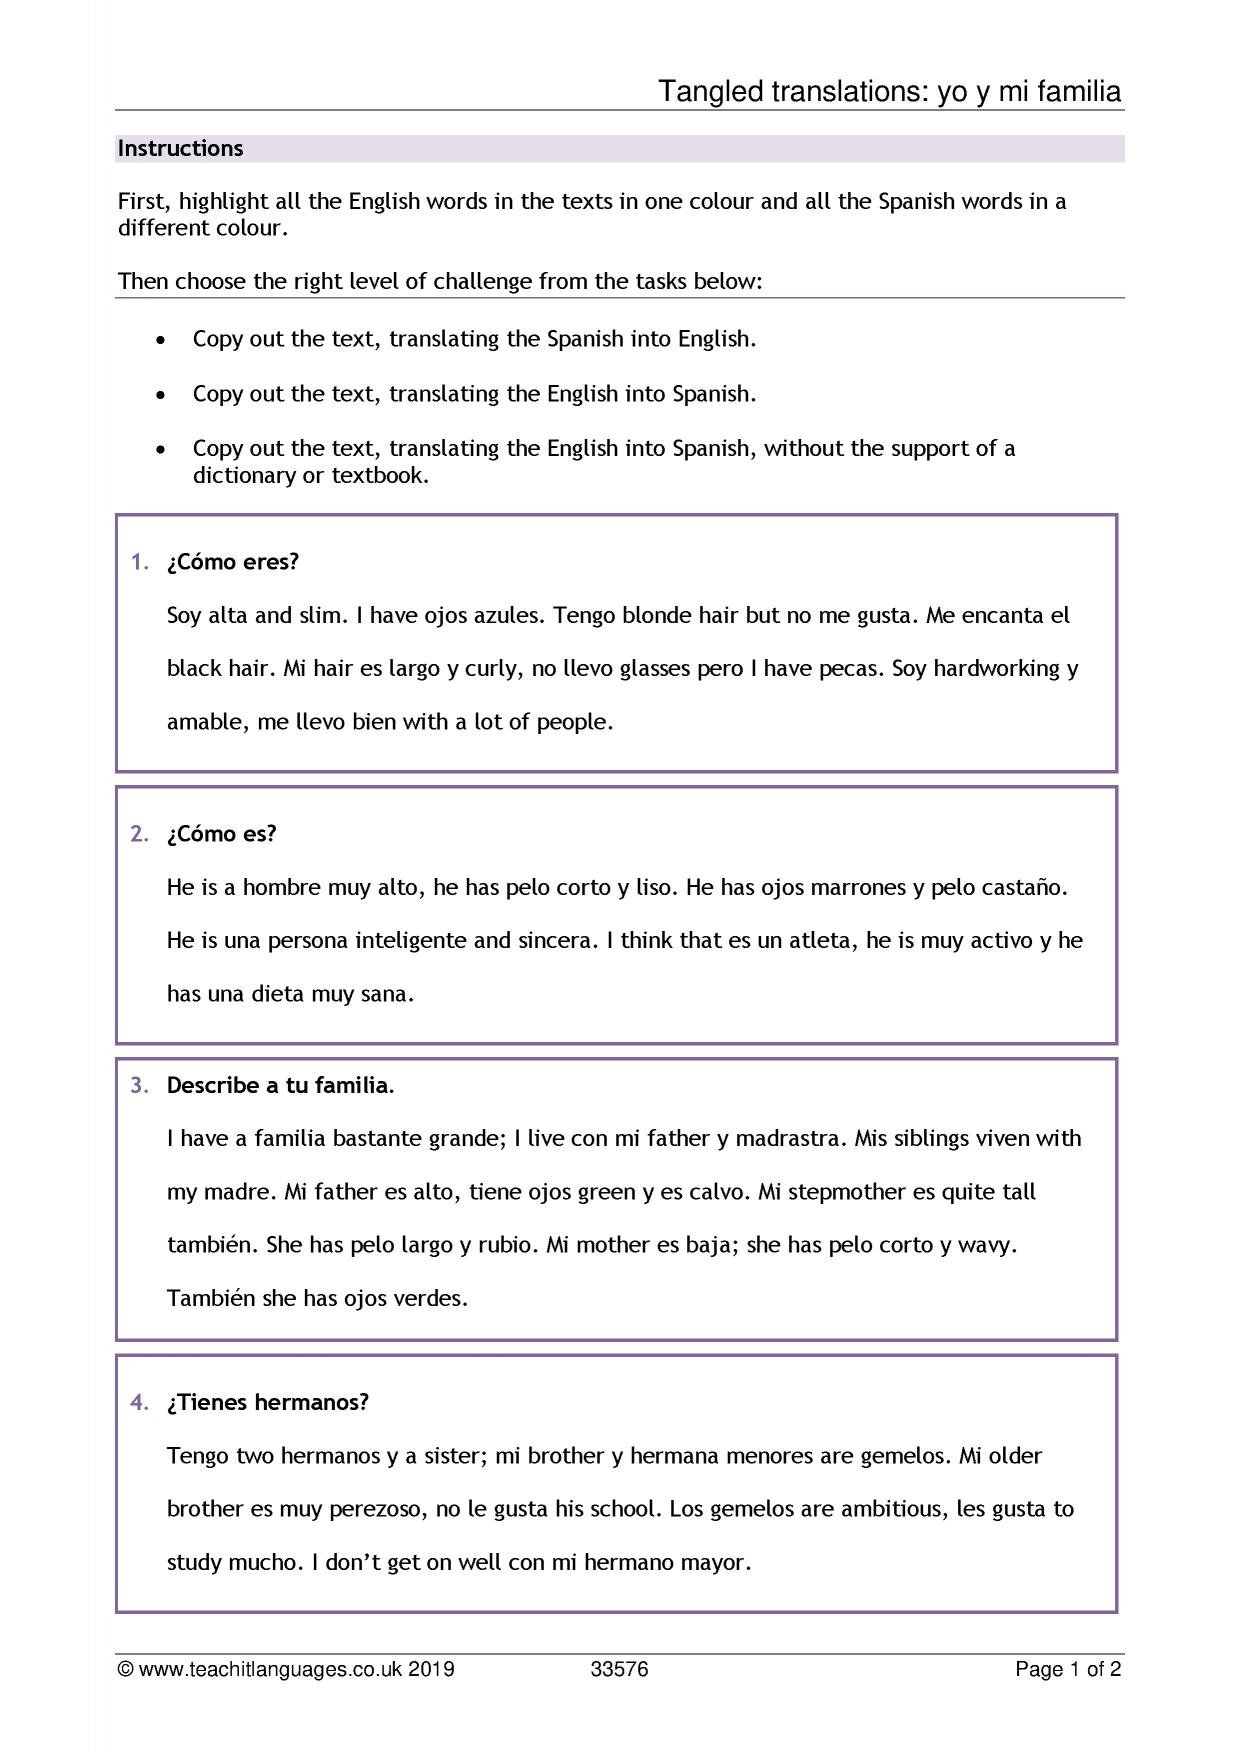 Spanish Language Teaching Resources  Teachit Languages For Did You Get It Spanish Worksheet Answers